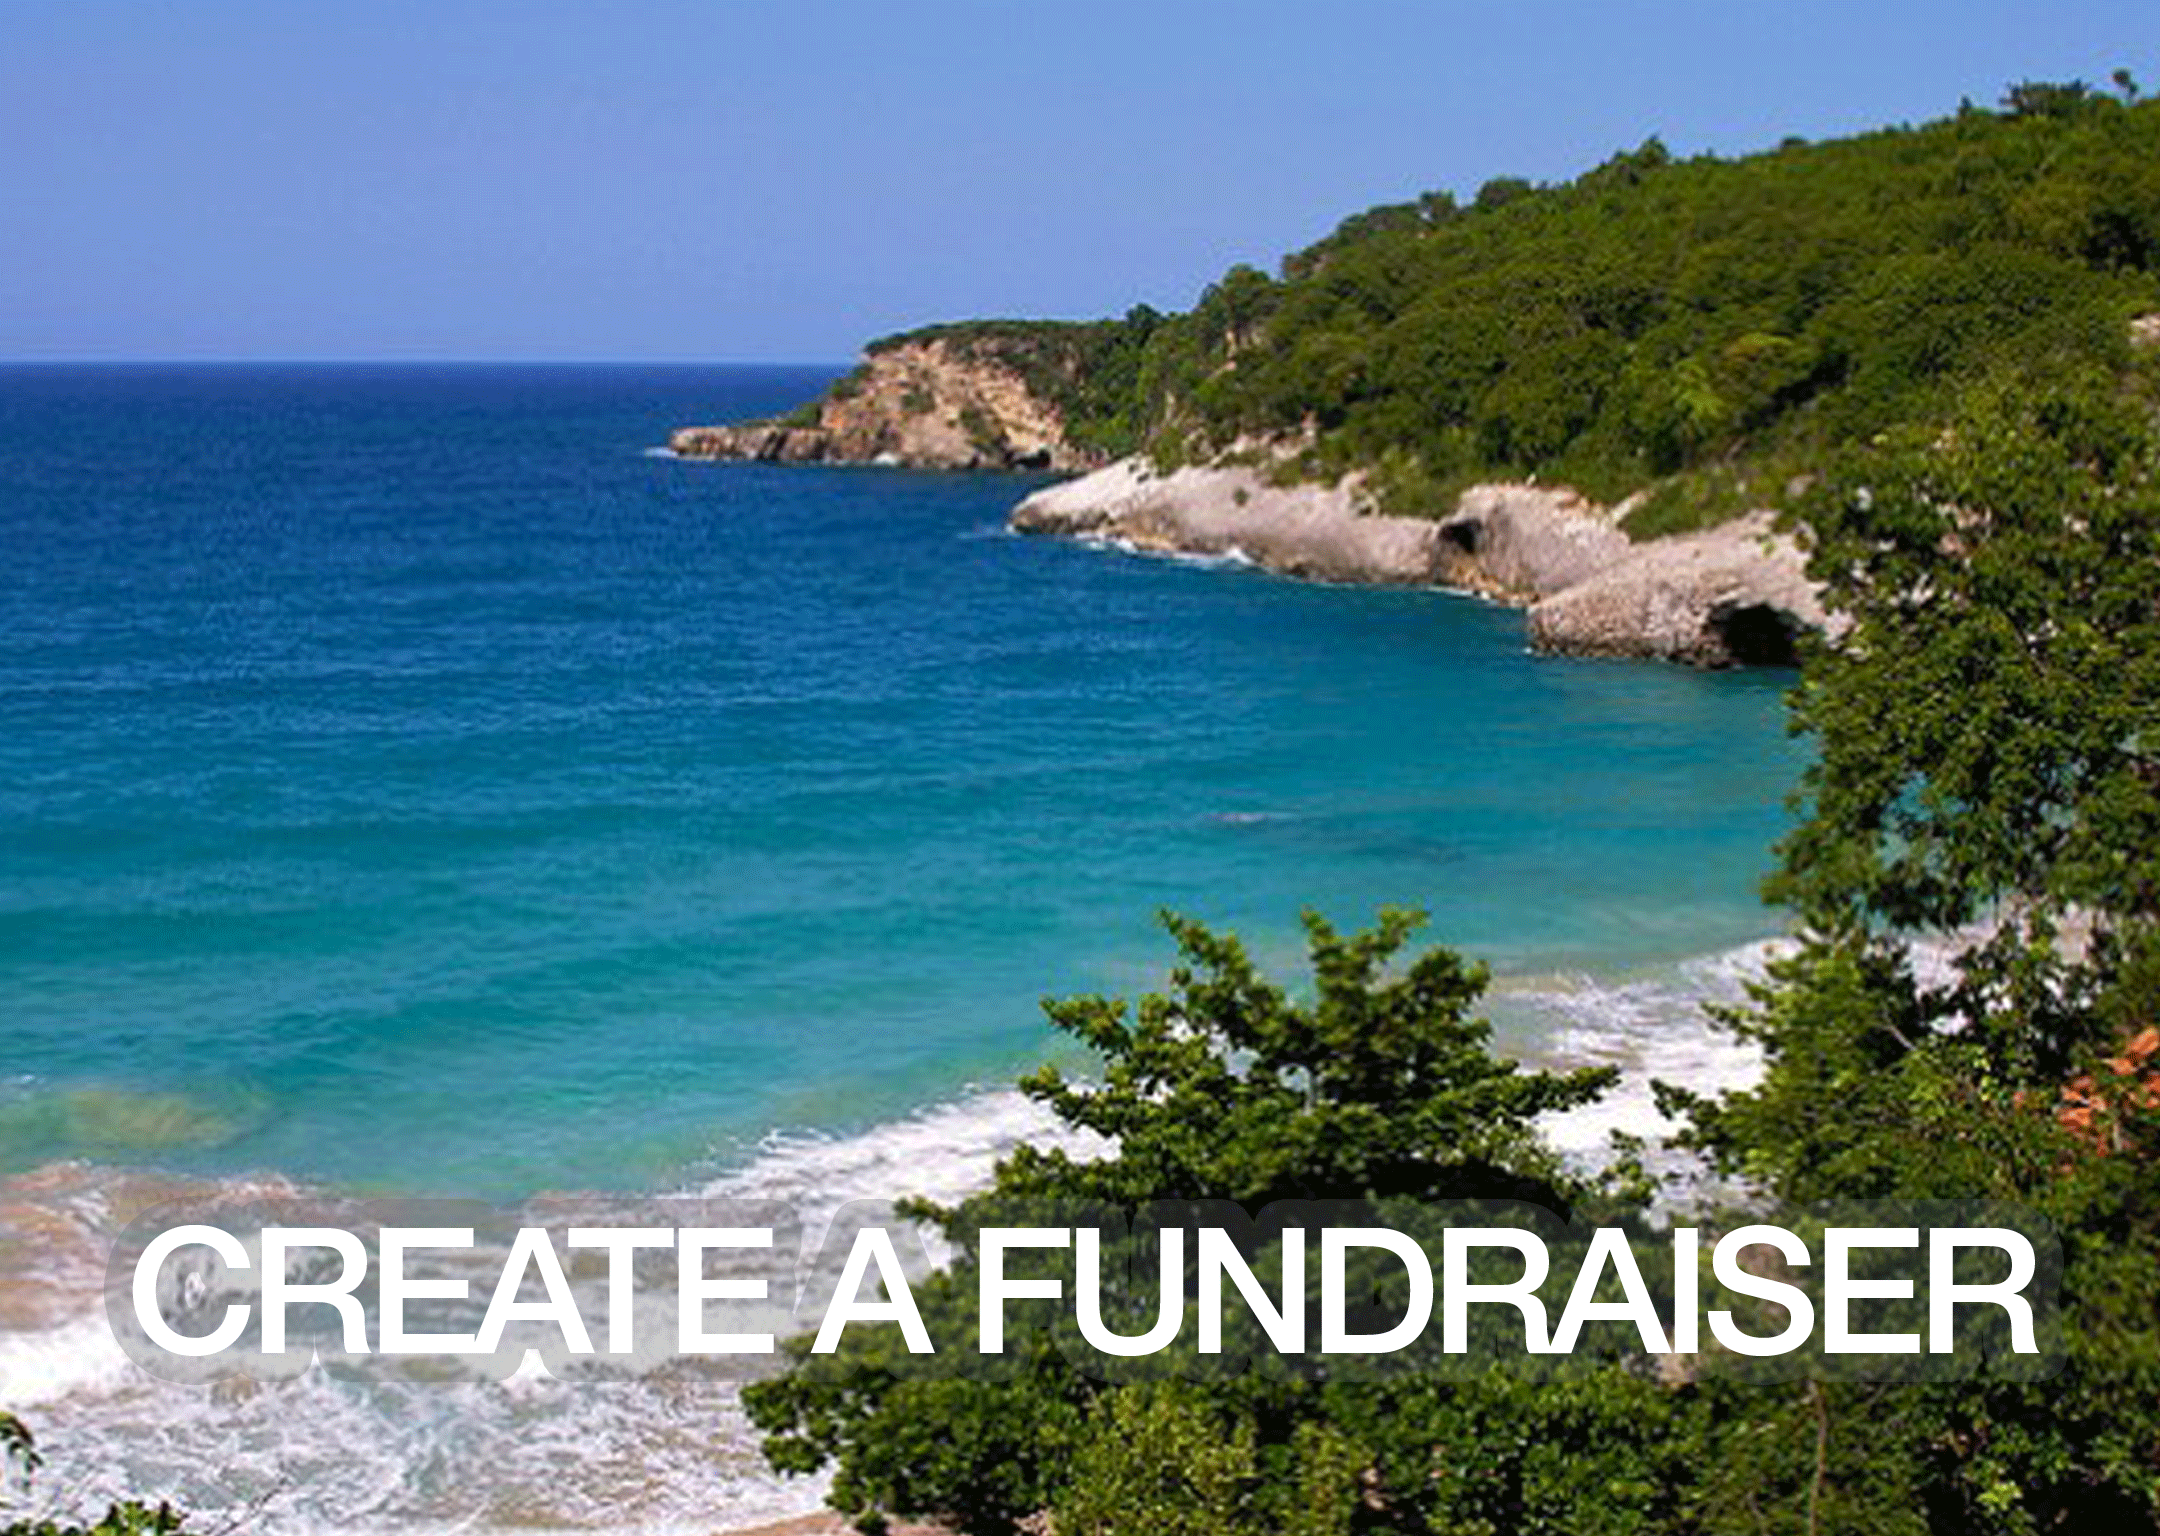 CREATE-FUNDRAISER.png